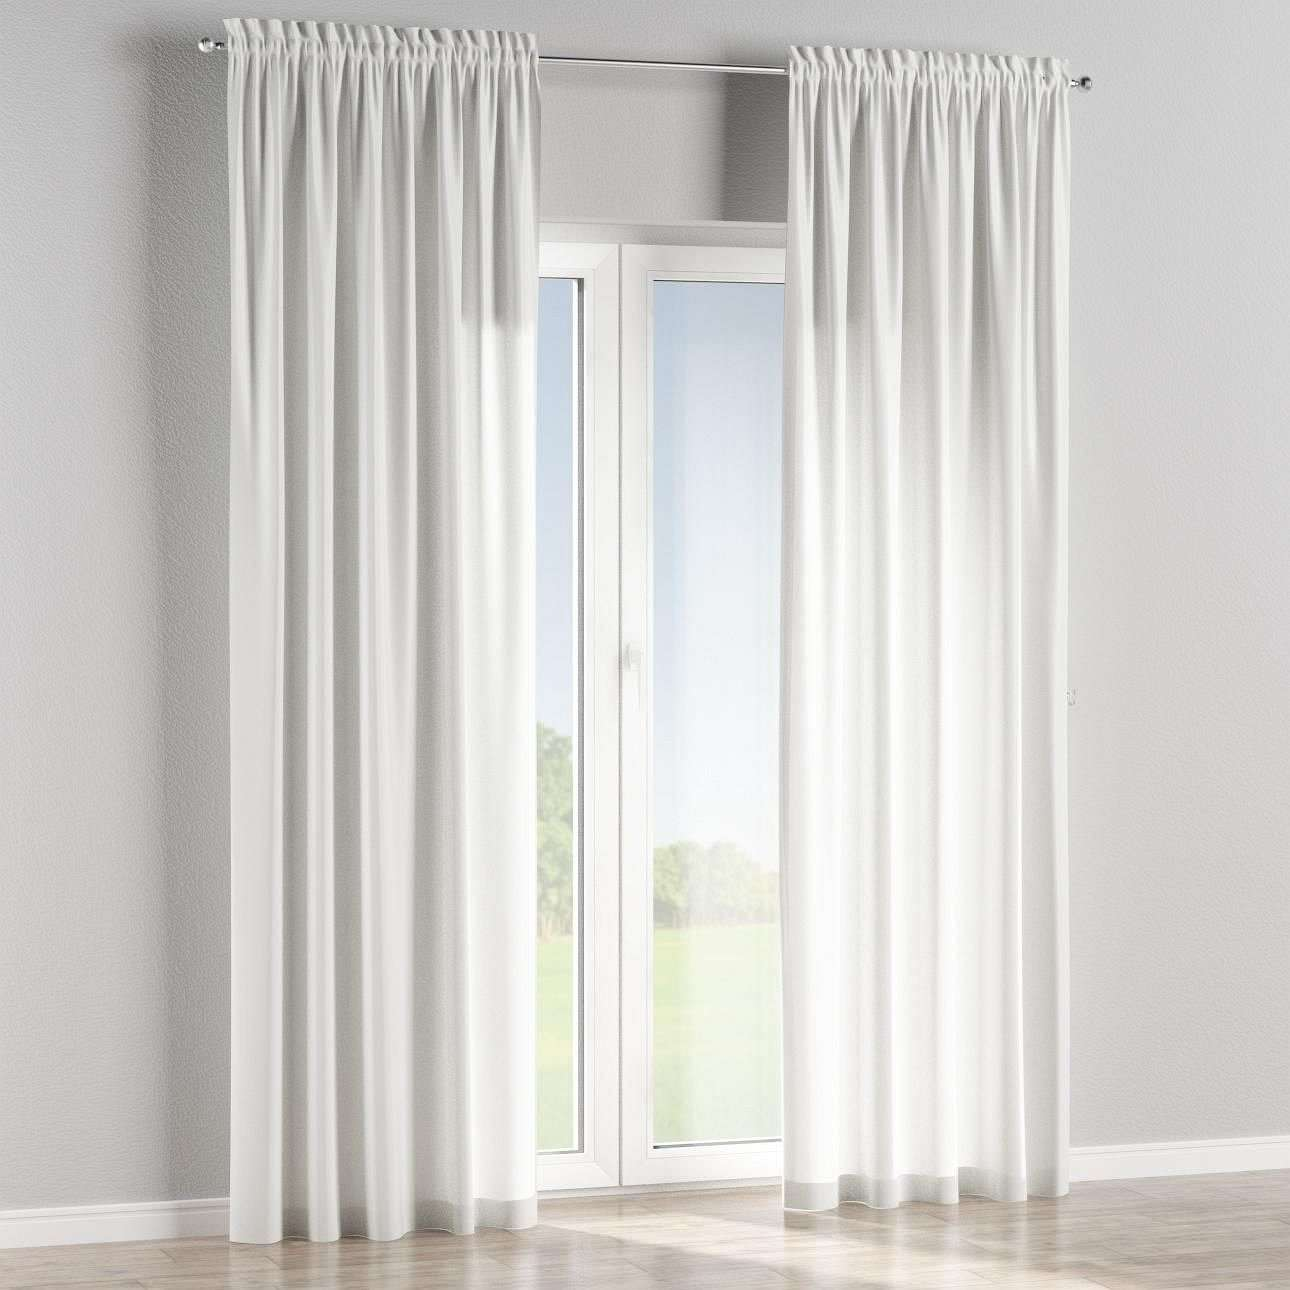 Slot and frill lined curtains in collection Flowers, fabric: 140-98